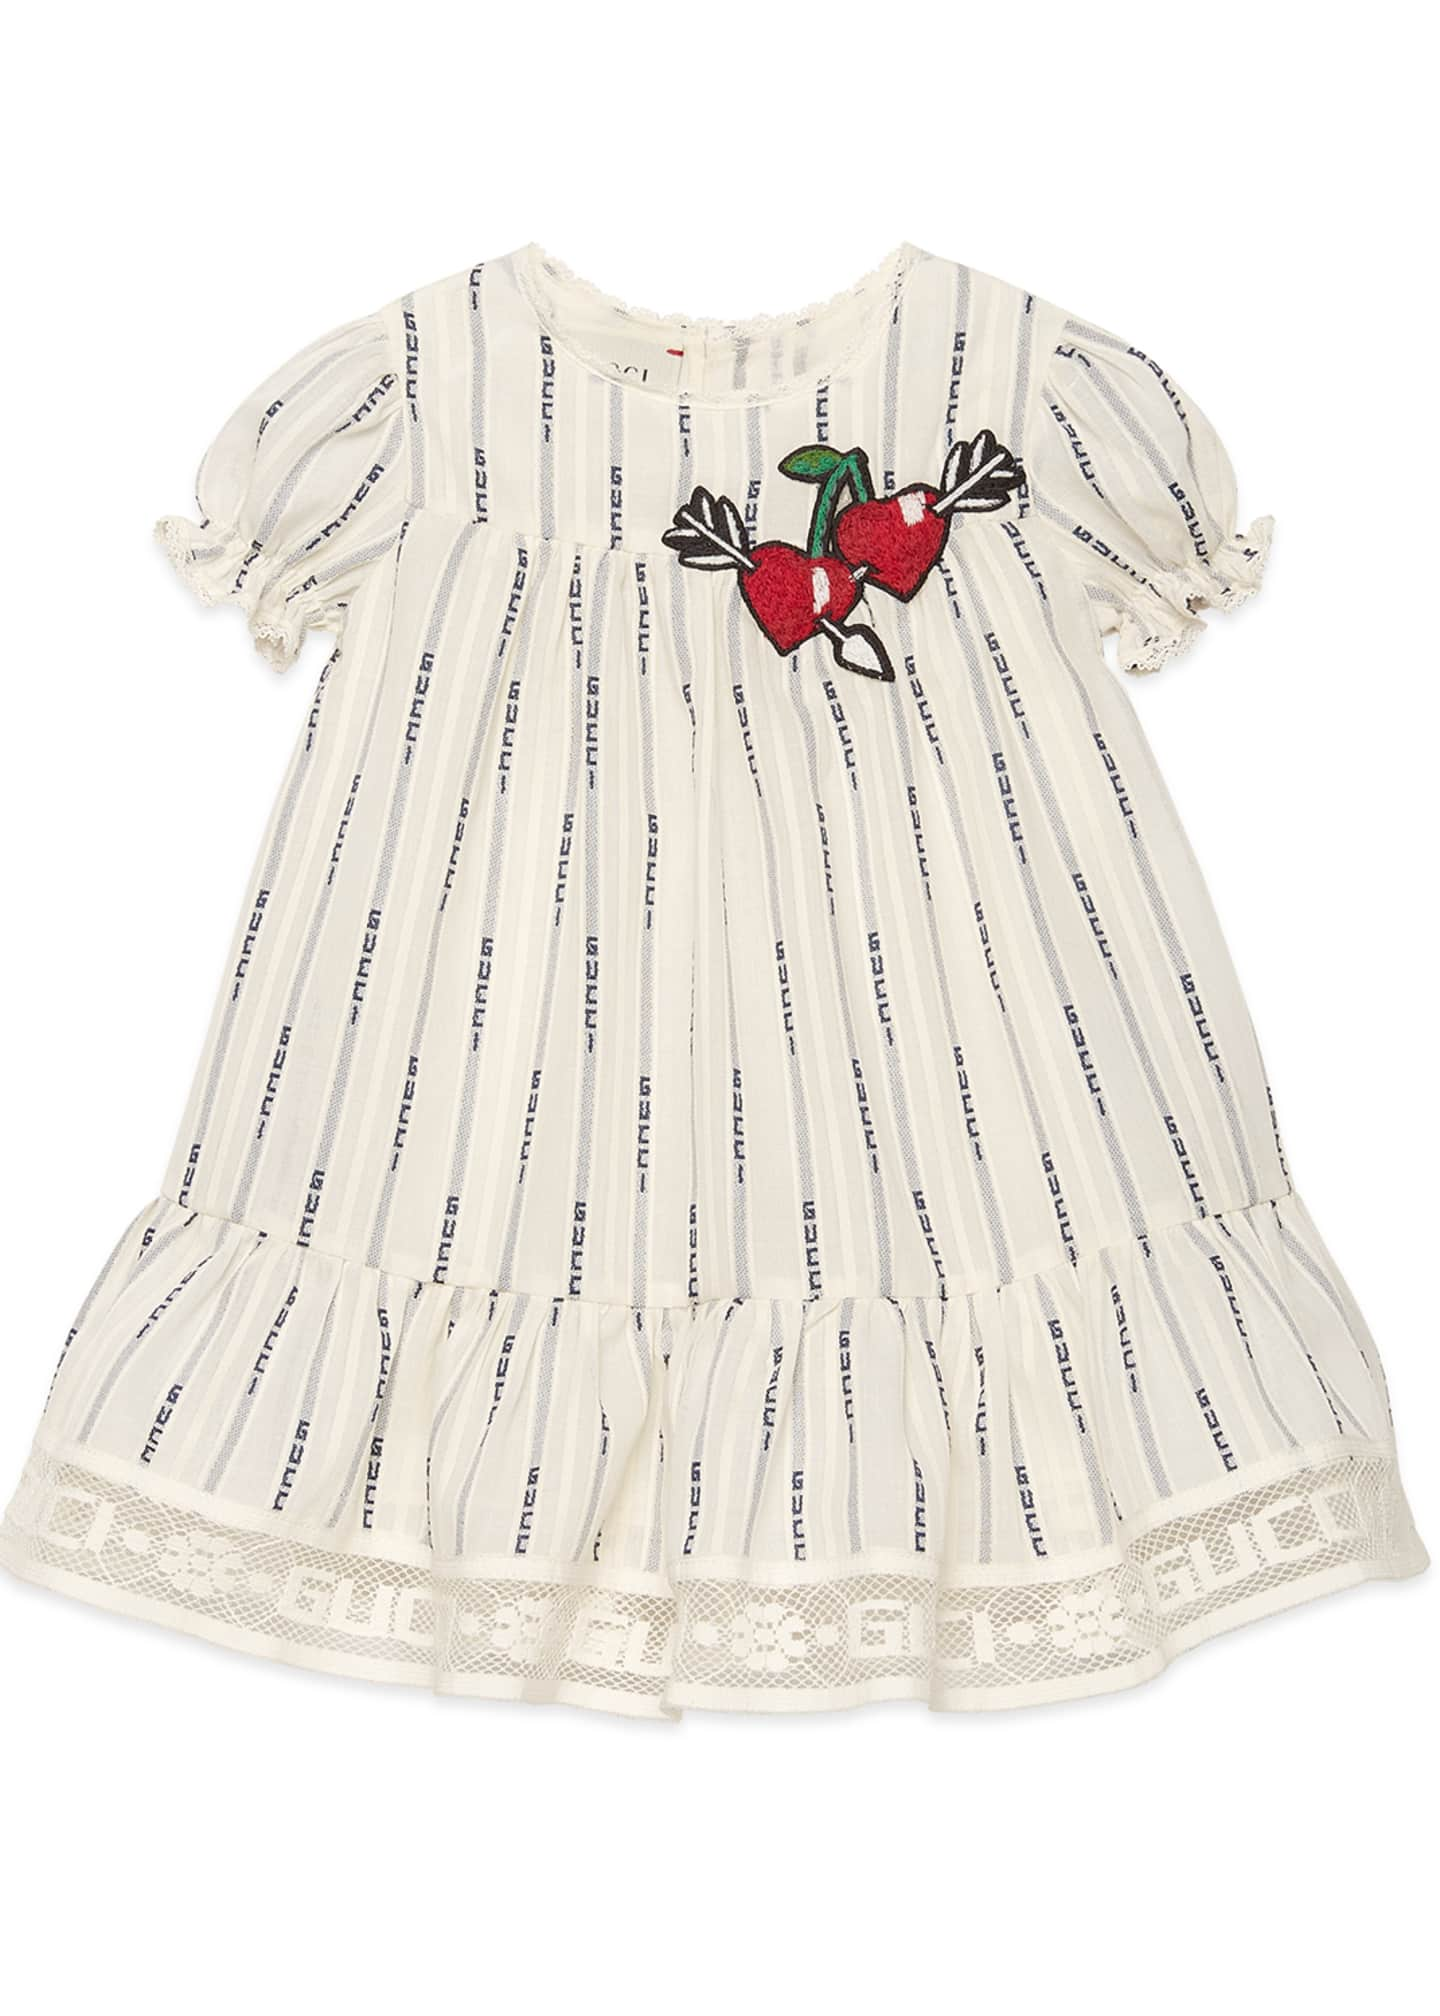 Gucci Logo Jacquard Puffy-Sleeve Dress w/ Cherries Embroidery,